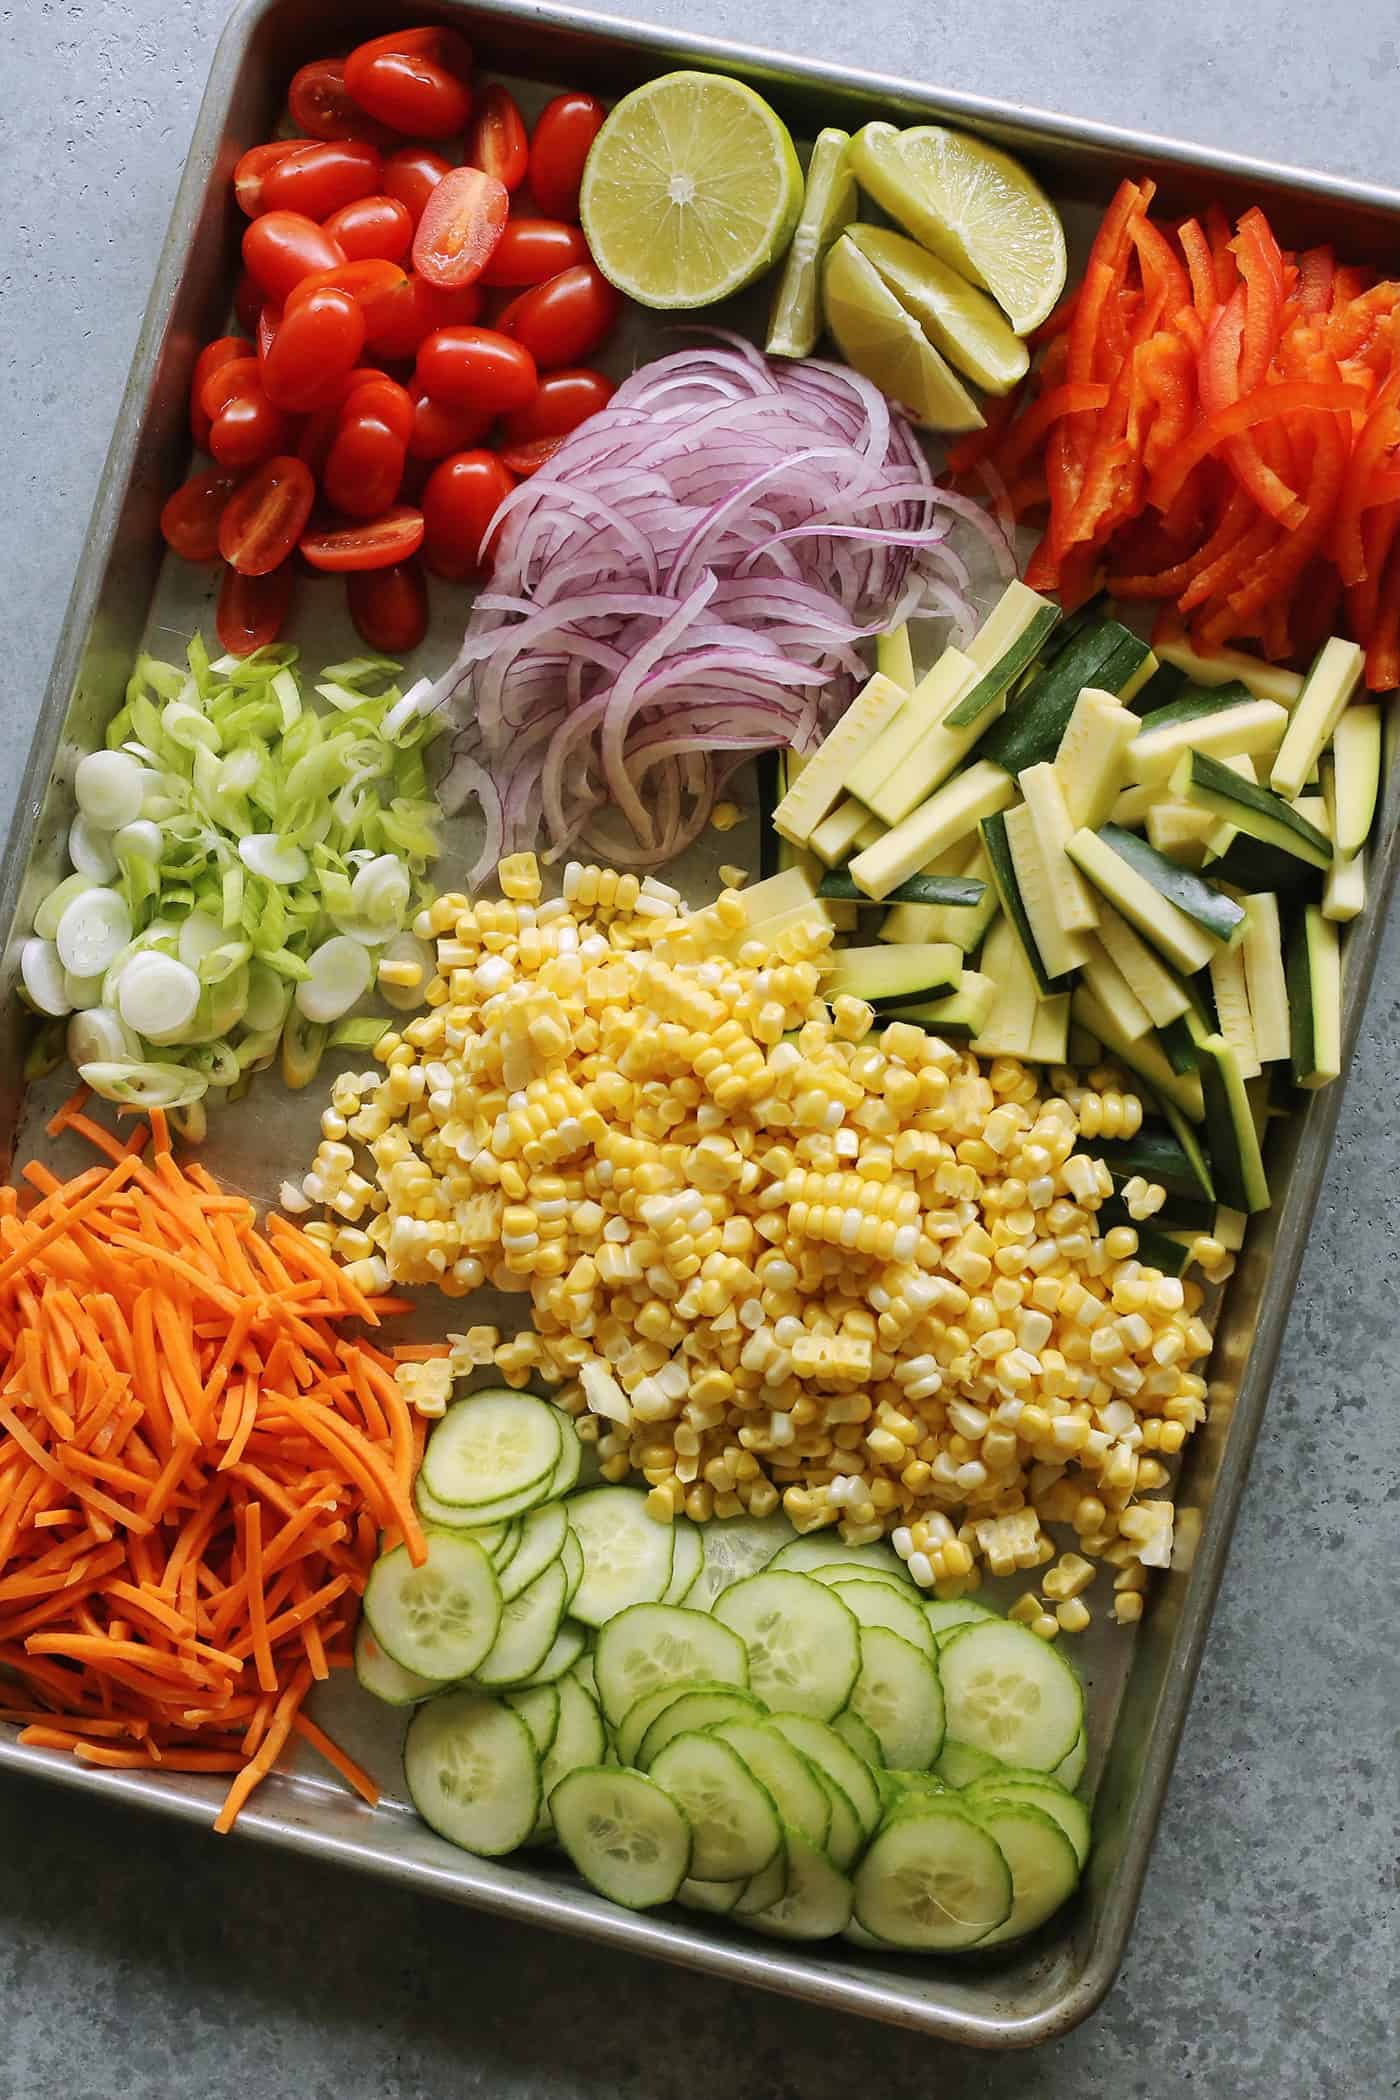 a large rectangular rimmed pan full of chopped and sliced fresh vegetables